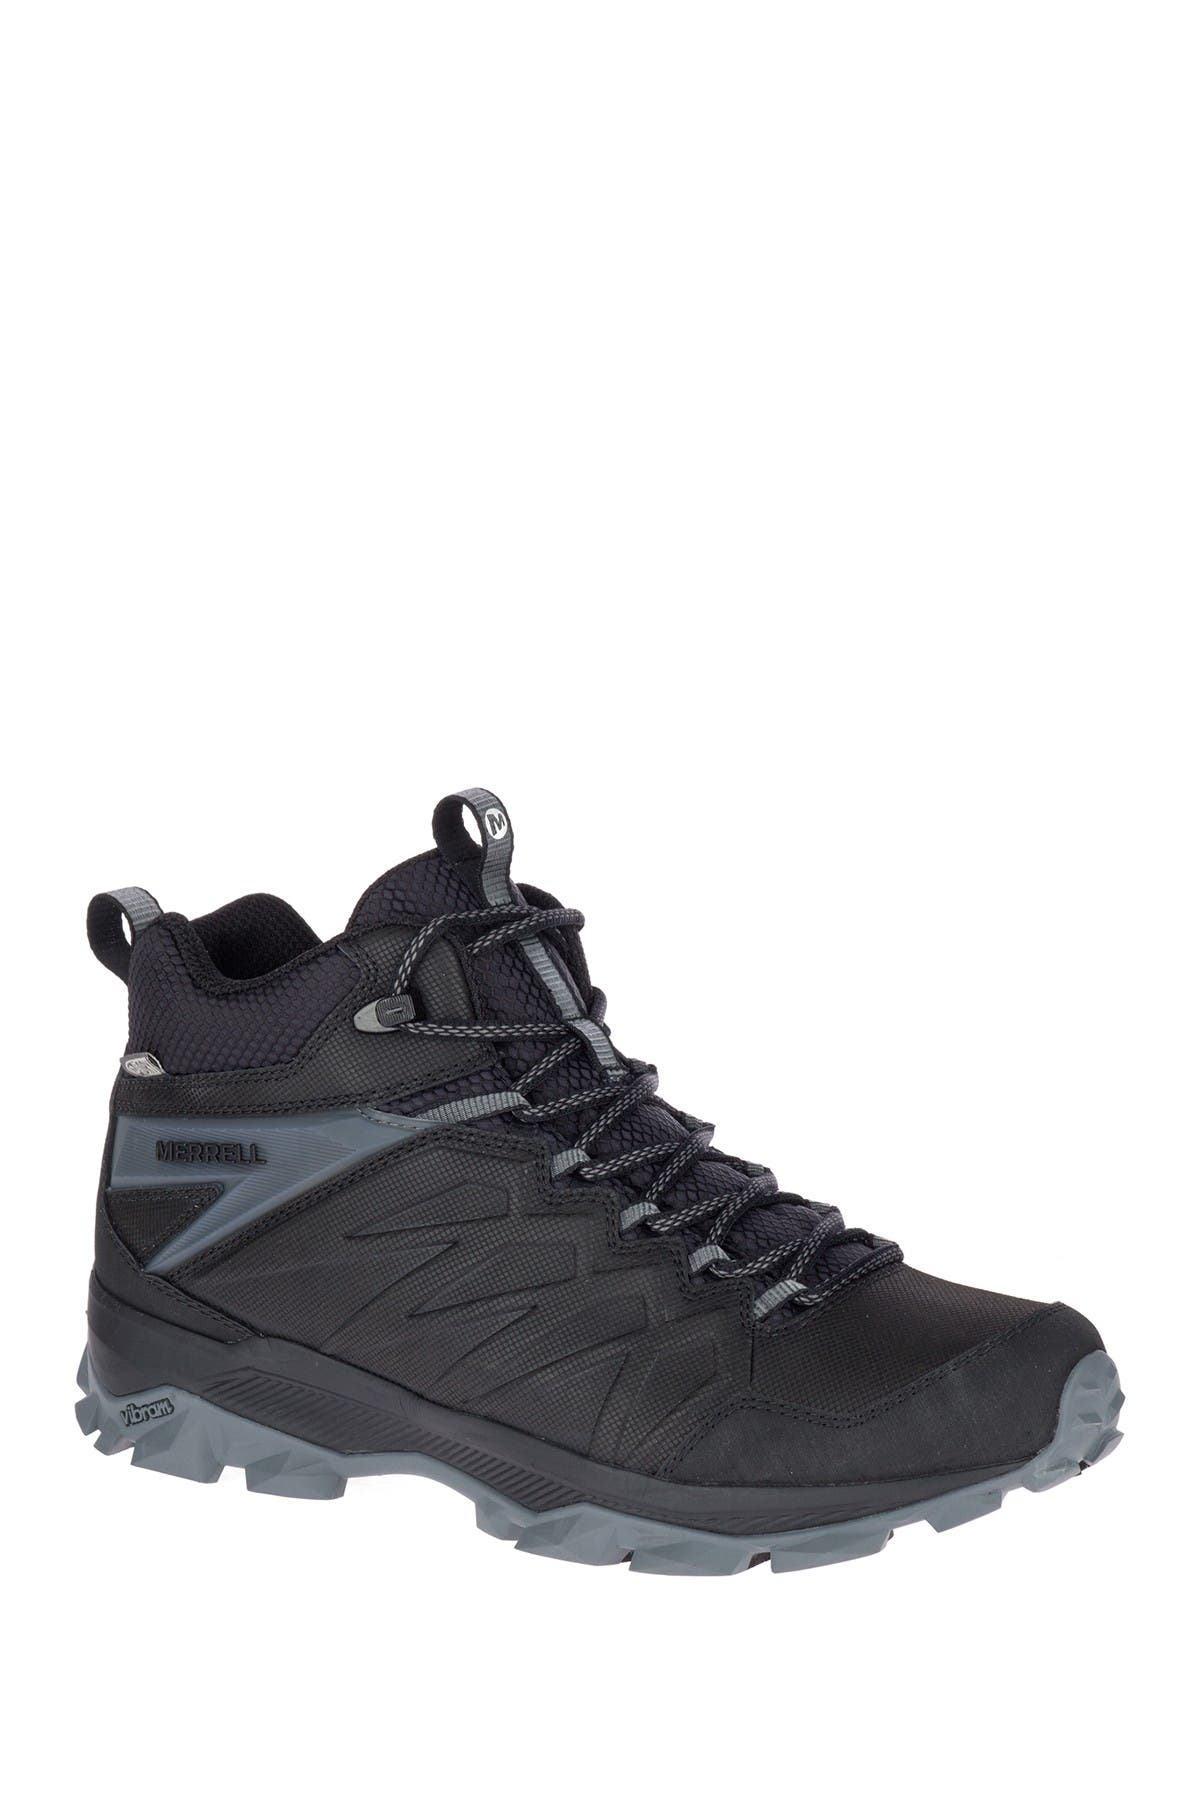 Image of Merrell Thermo Freeze Mid Waterproof Boot